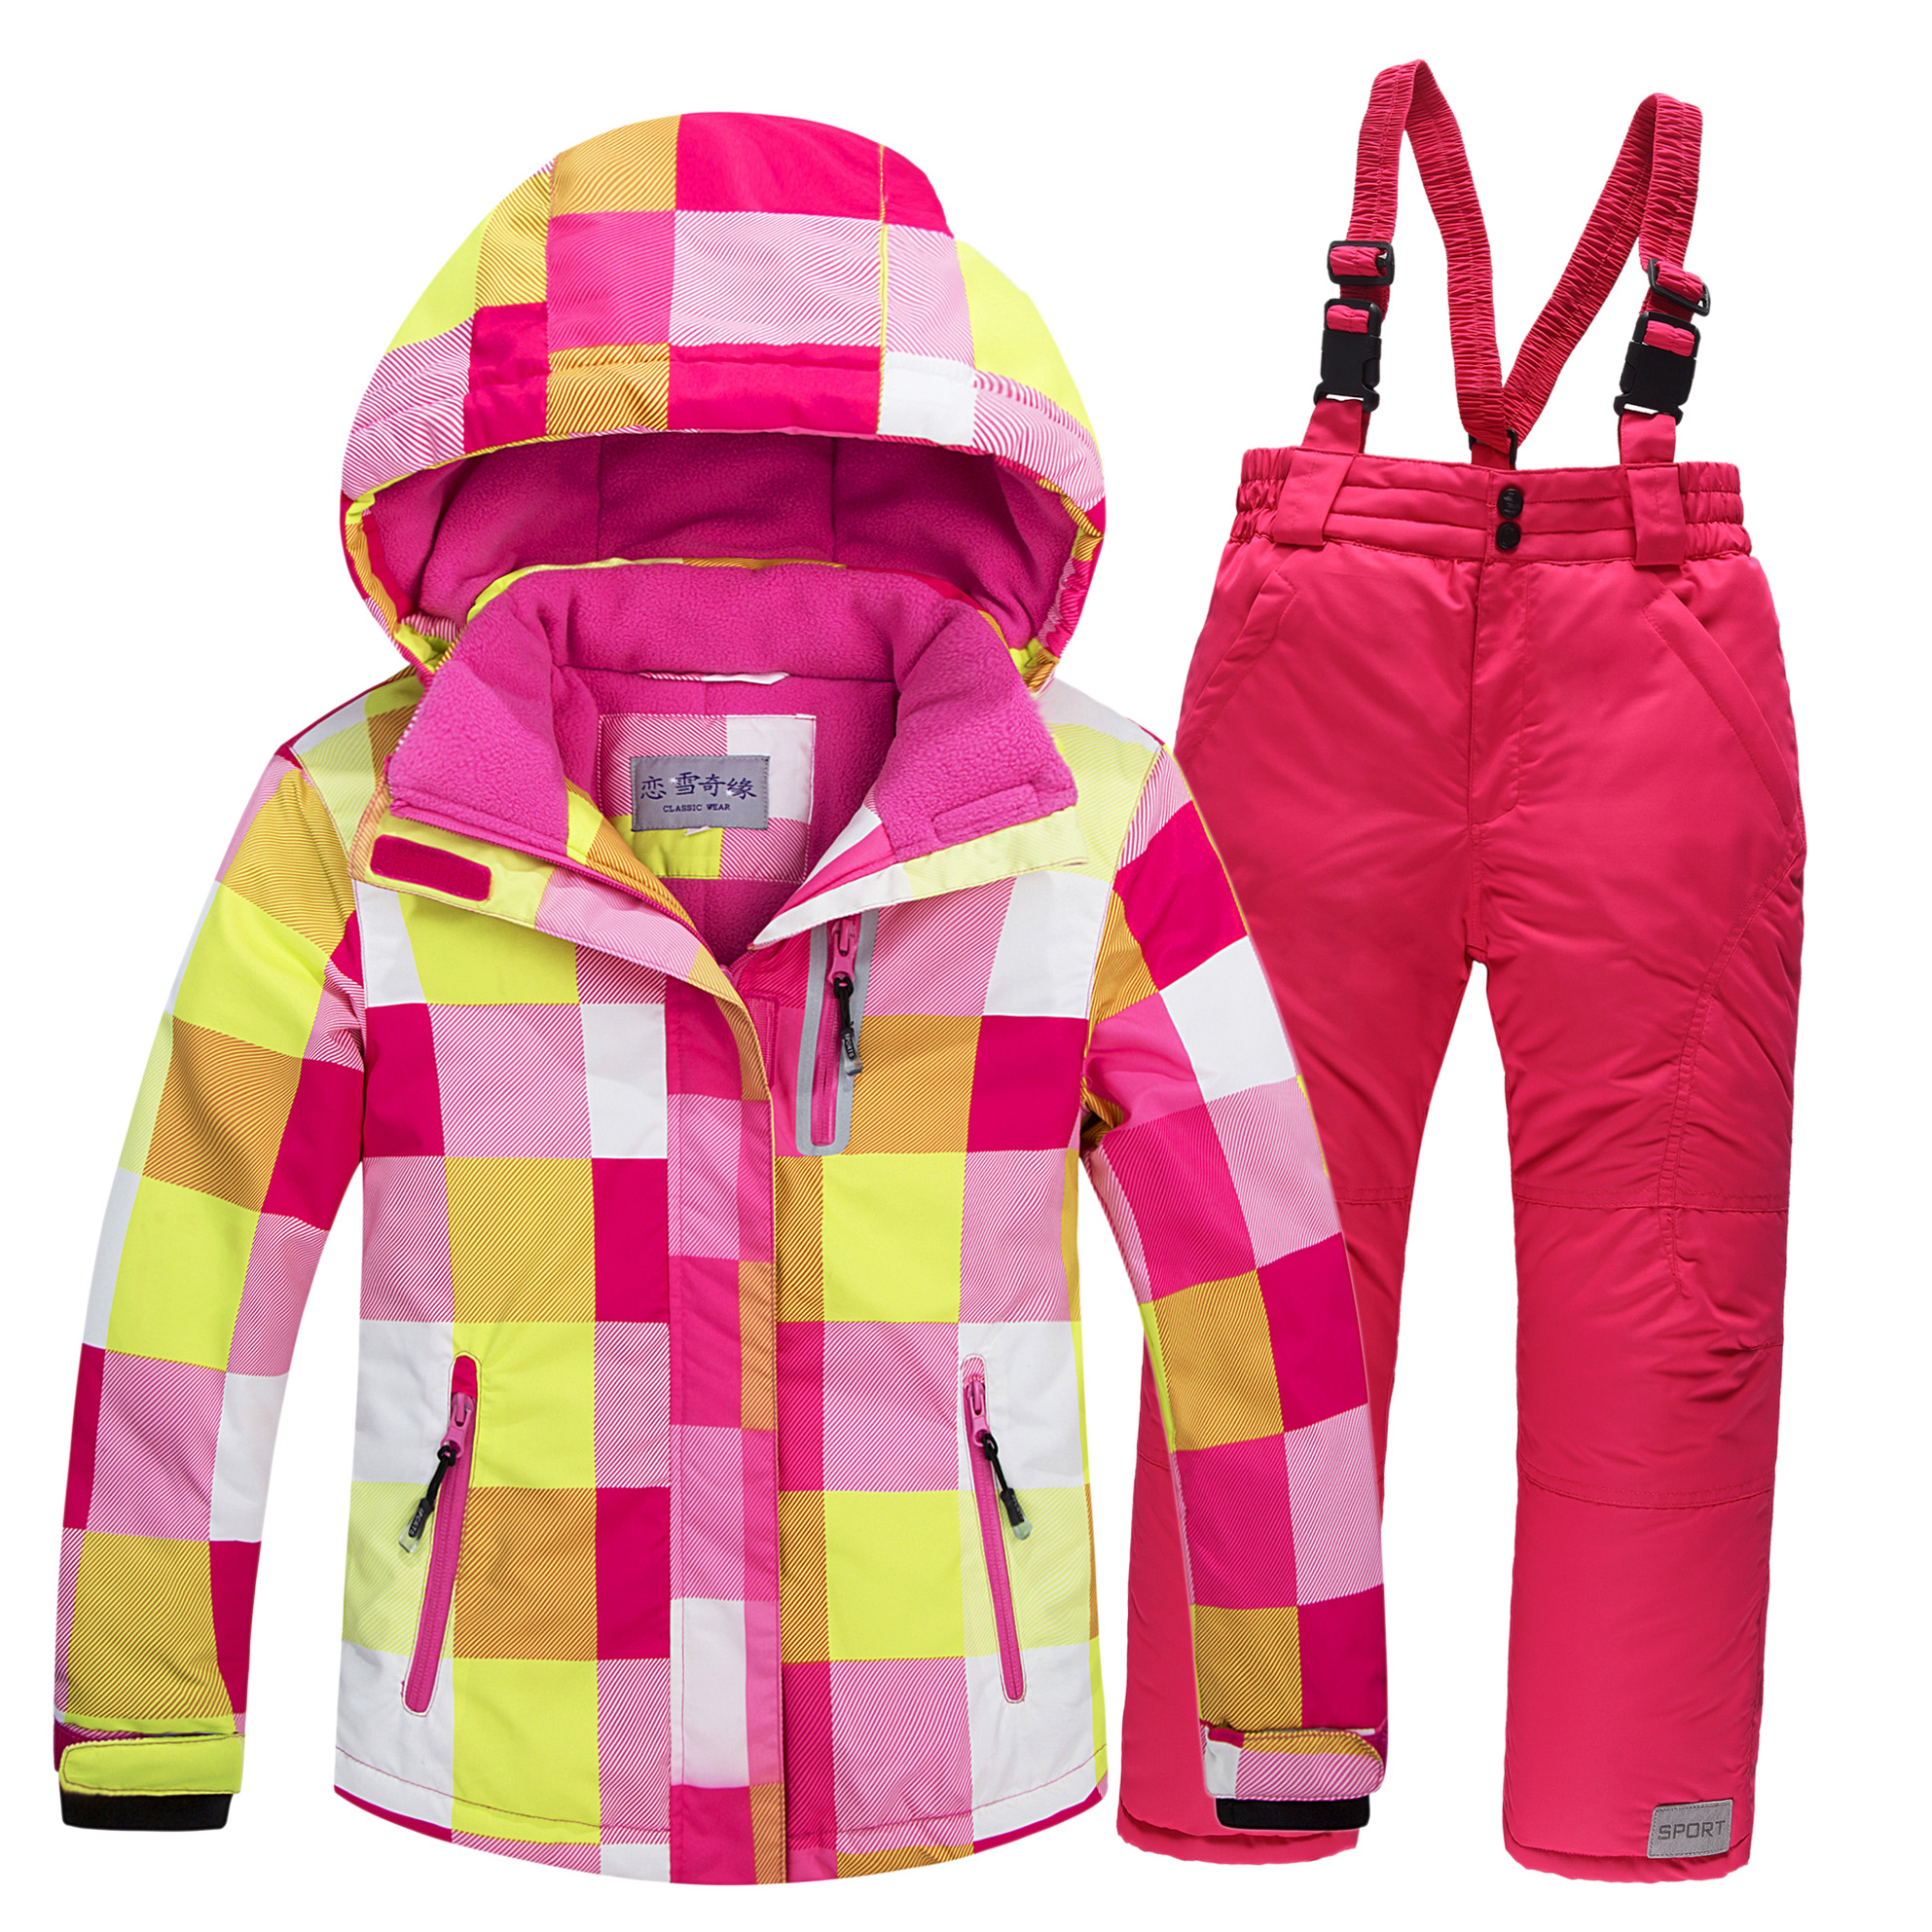 2017 Children Ski Suit Set Thickening Waterproof Teenage Girl Boy Cold-proof Outdoor Clothes Windproof Winter Suits For Kids